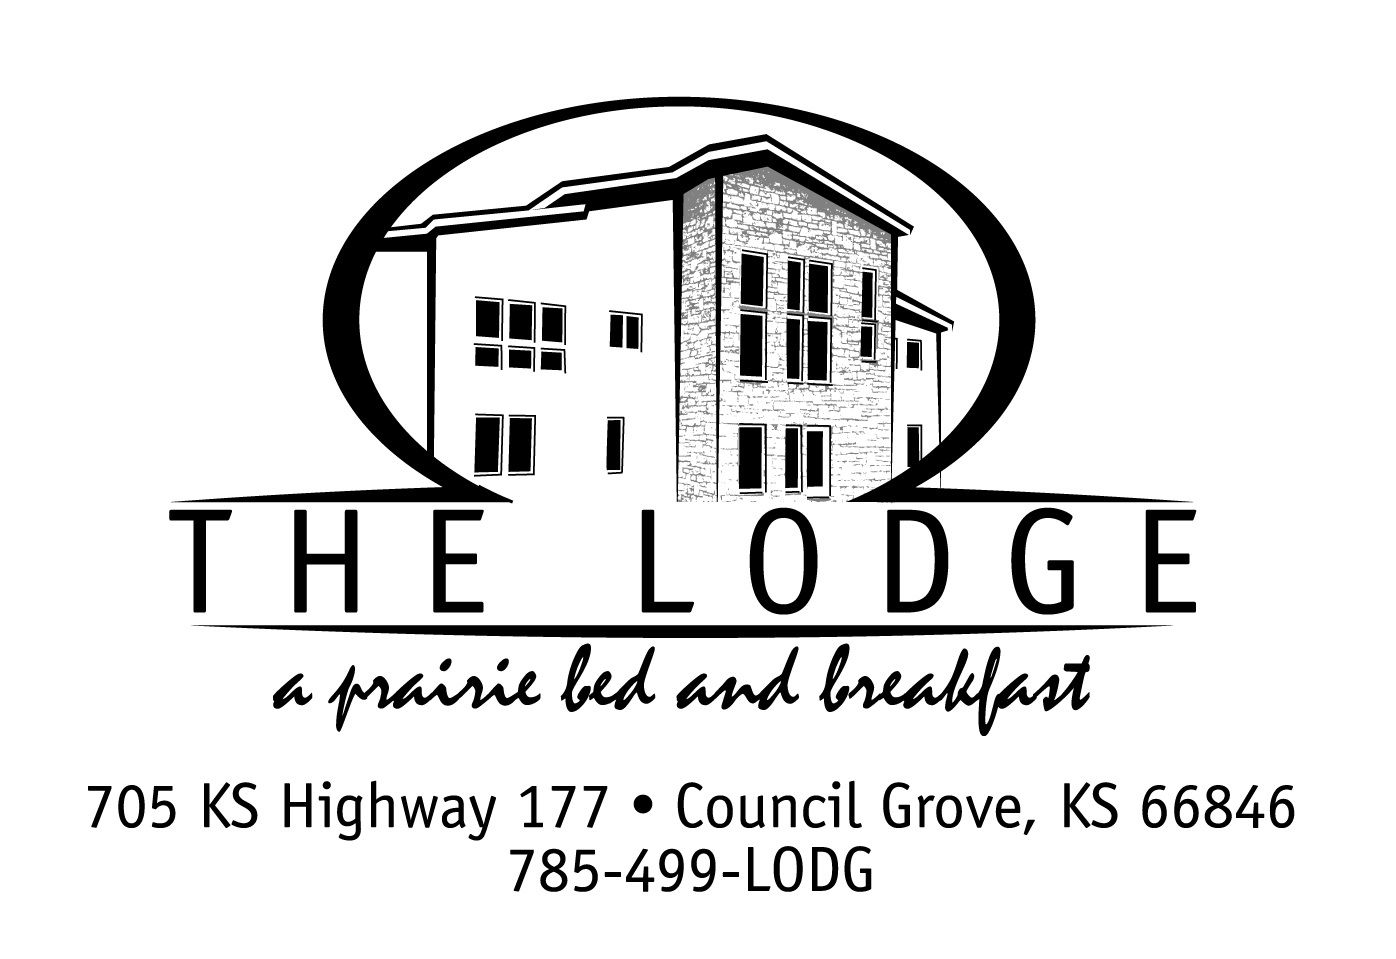 THE LODGE a prairie bed and breakfast . . . Serenity in